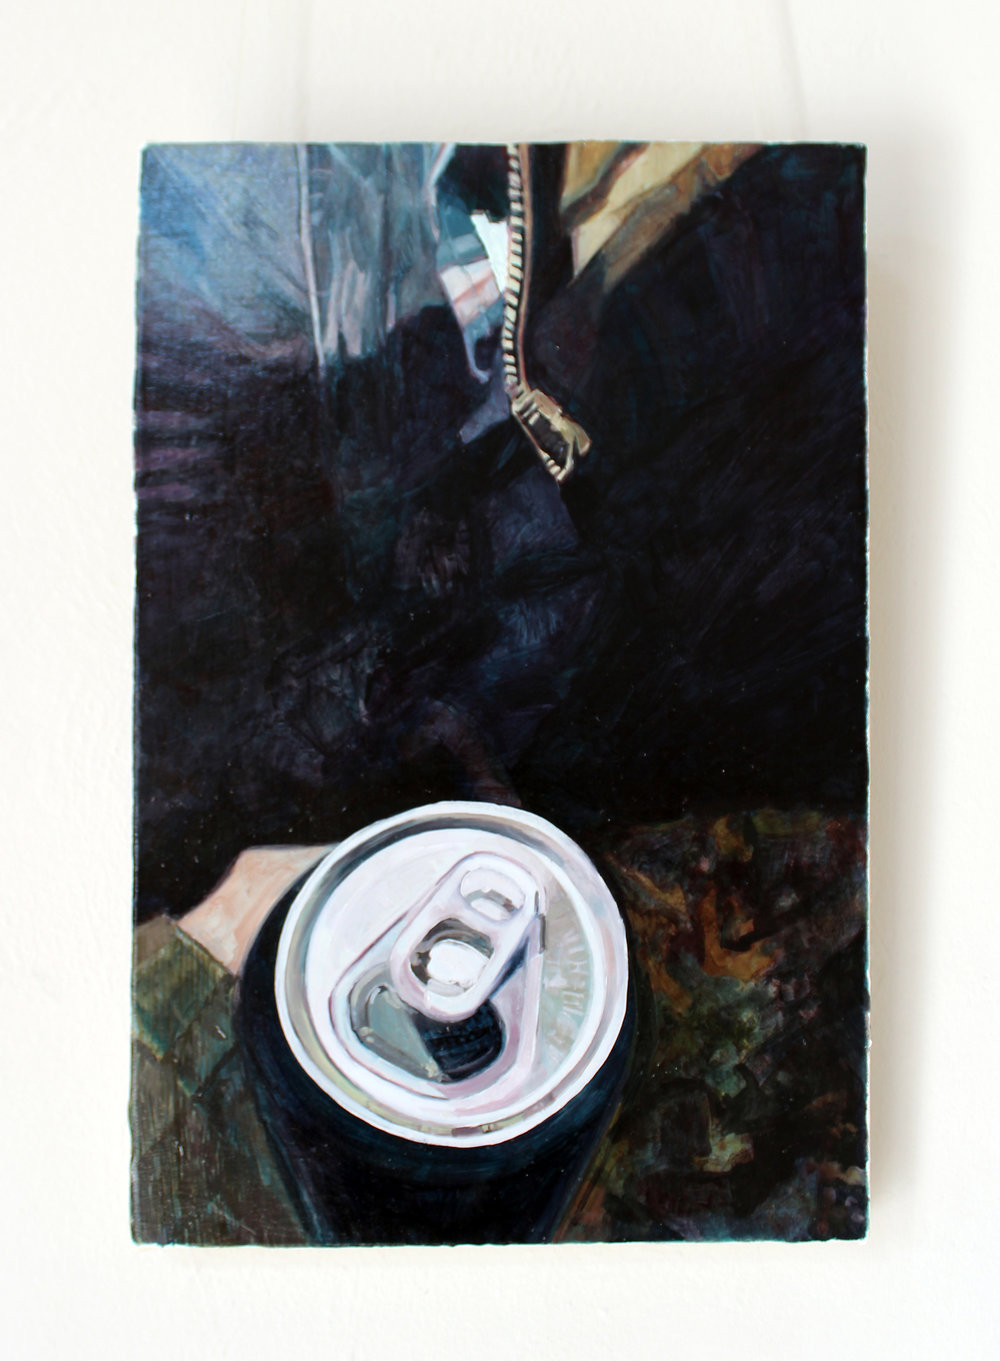 Back in Black (IPA in the winter), 2017, oil on canvas, 45 cm x 30 cm